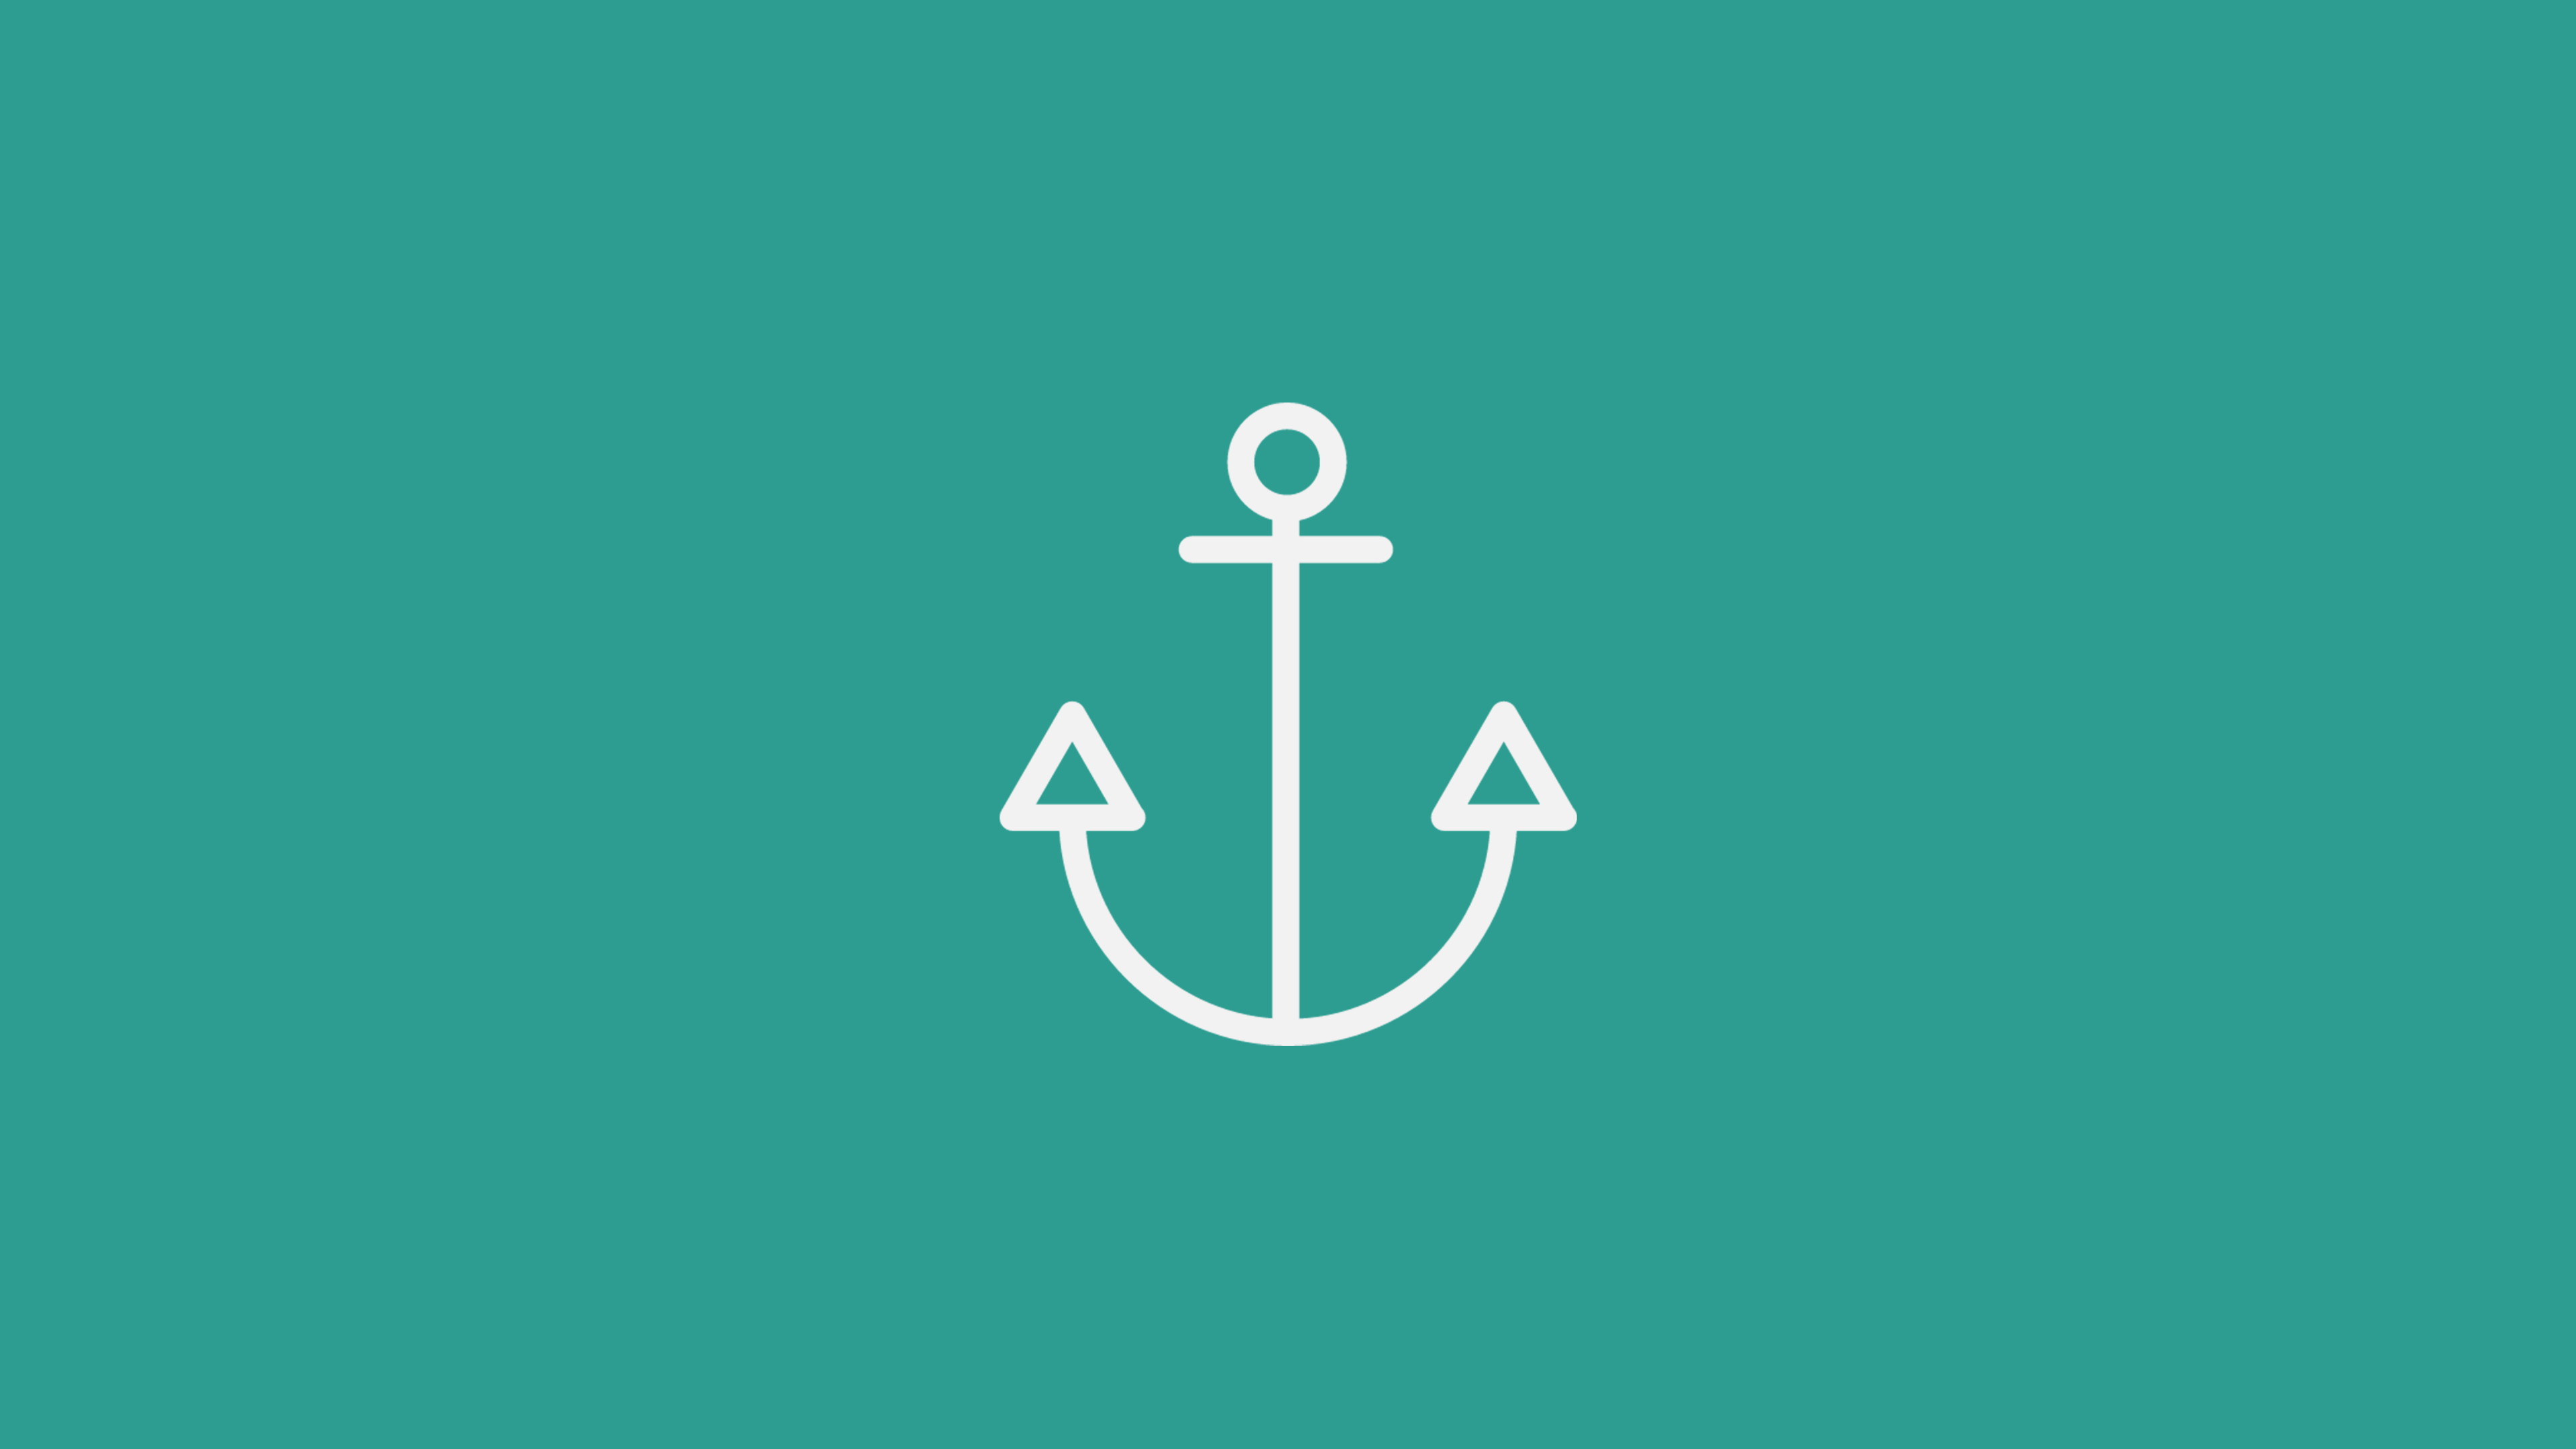 anchor wallpaper for iphone 4